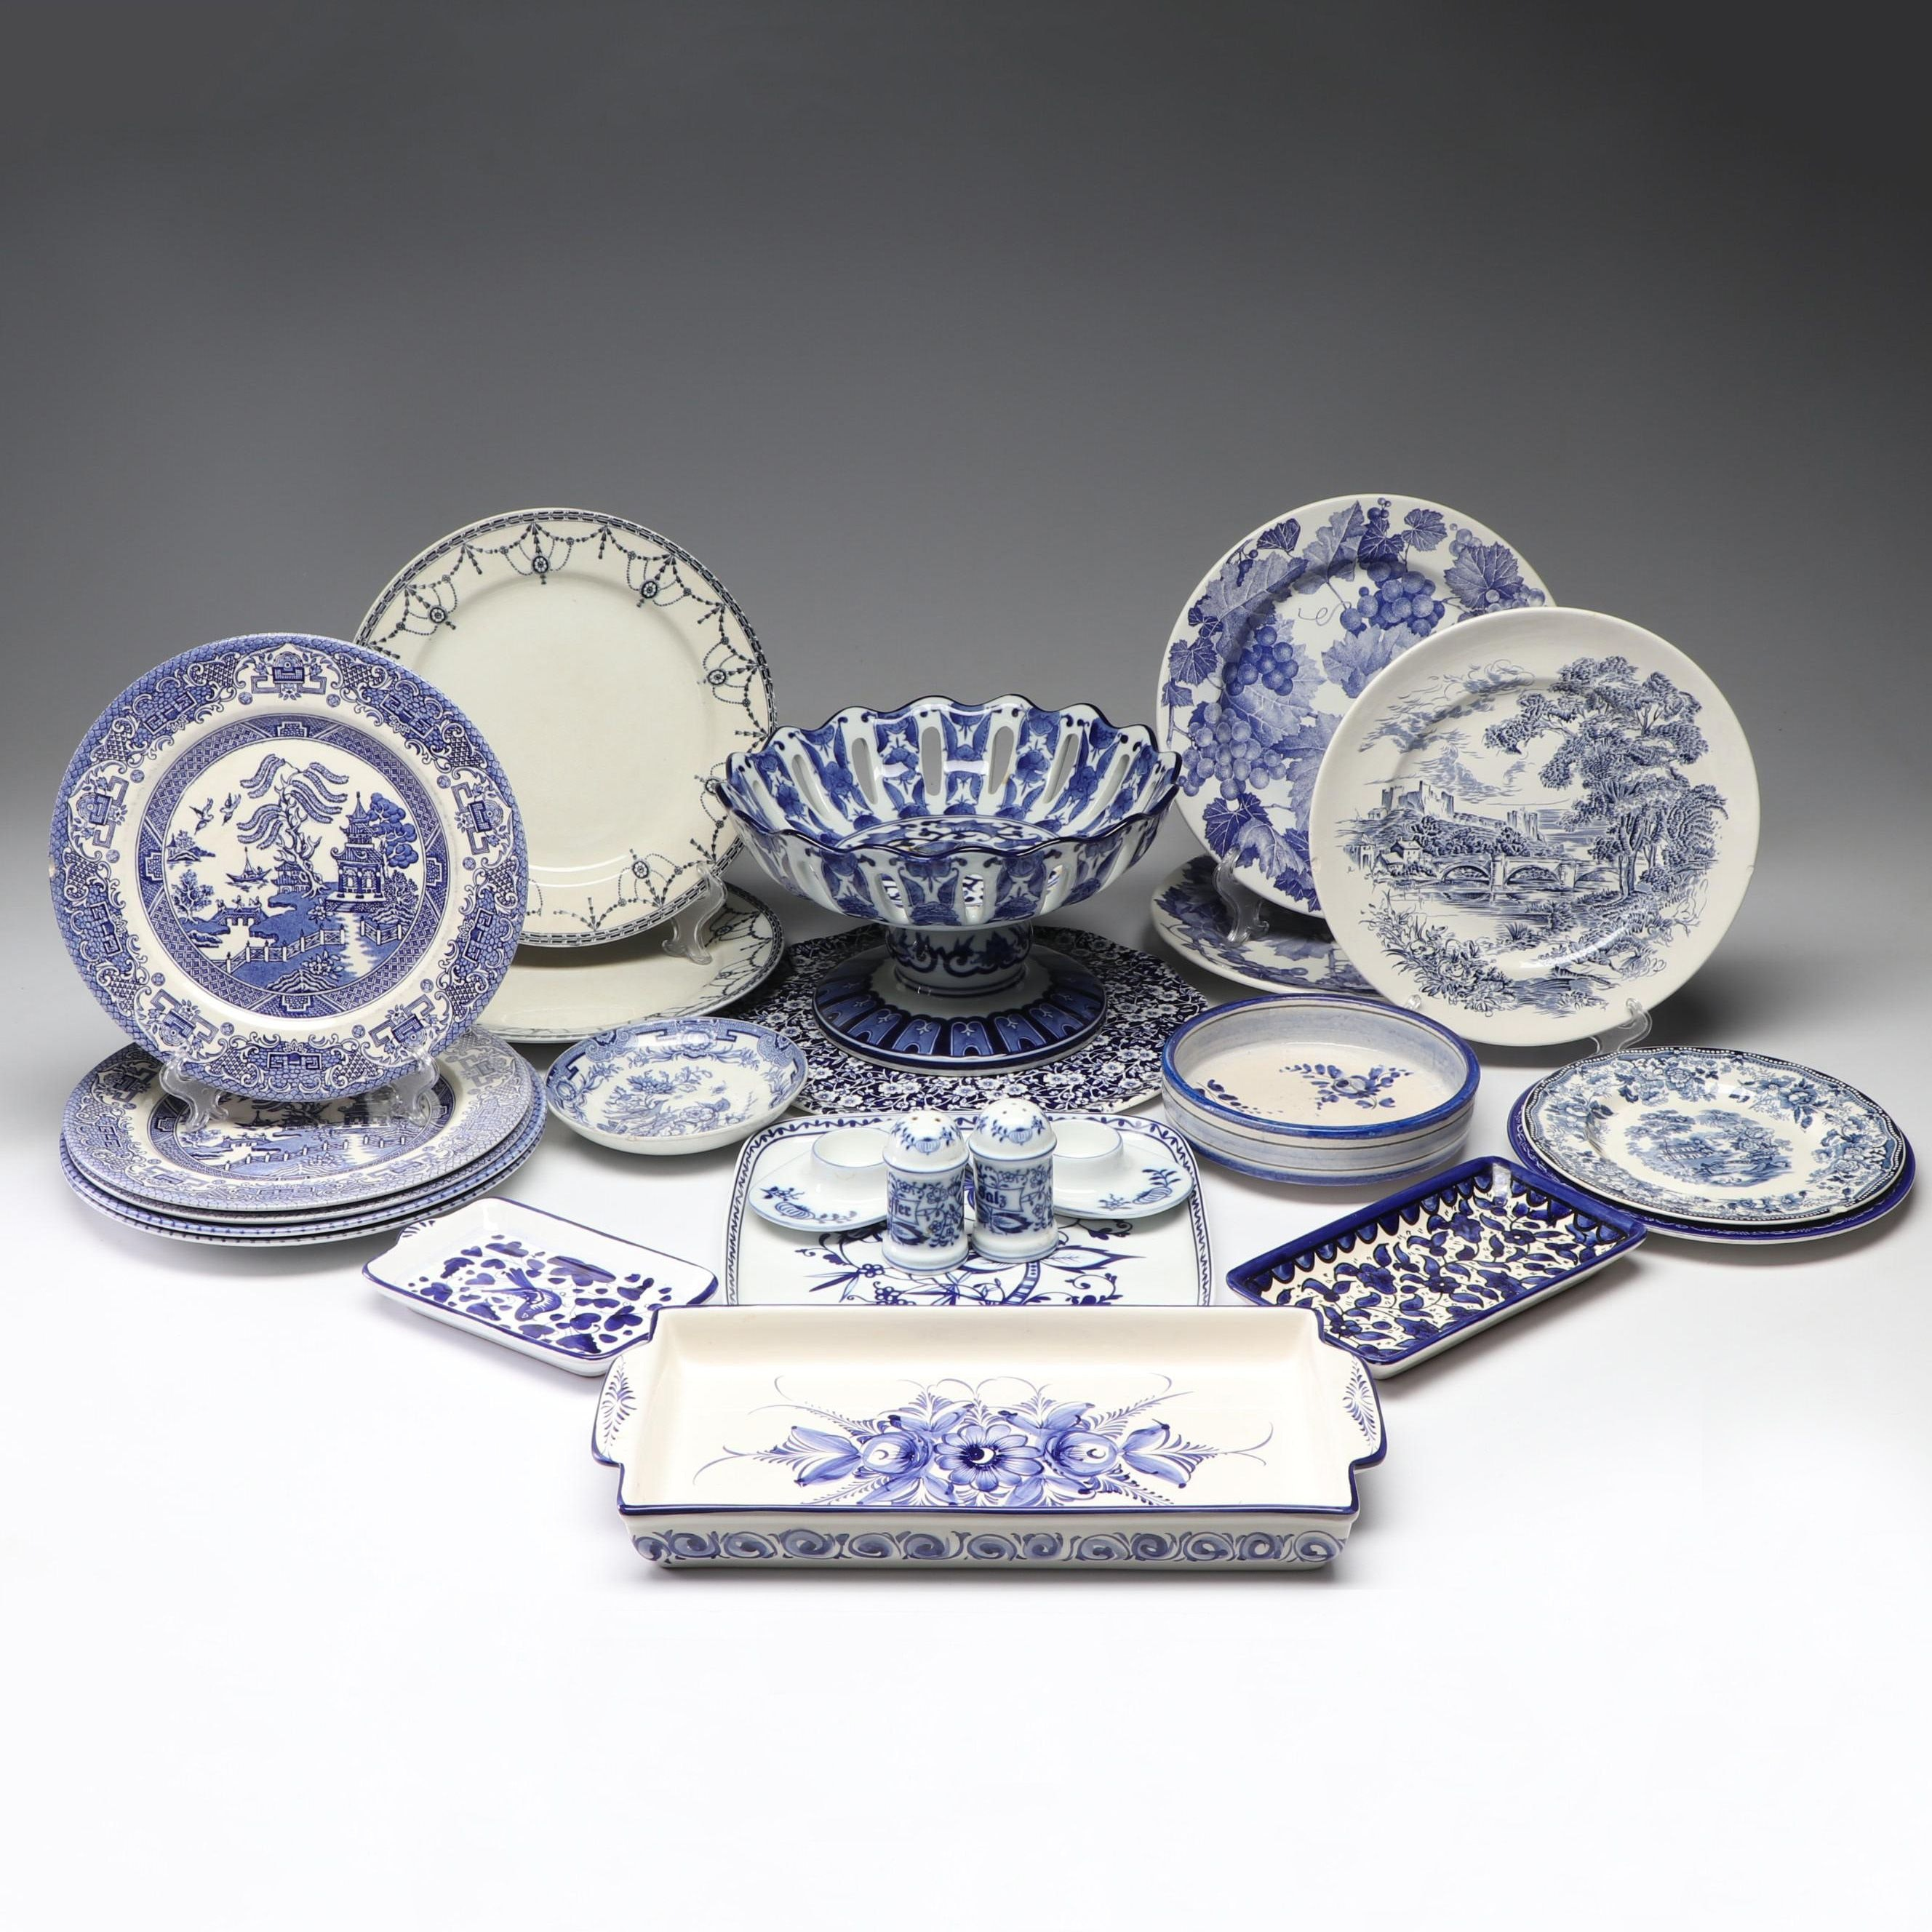 Collection of Blue and White European Ceramic Tableware